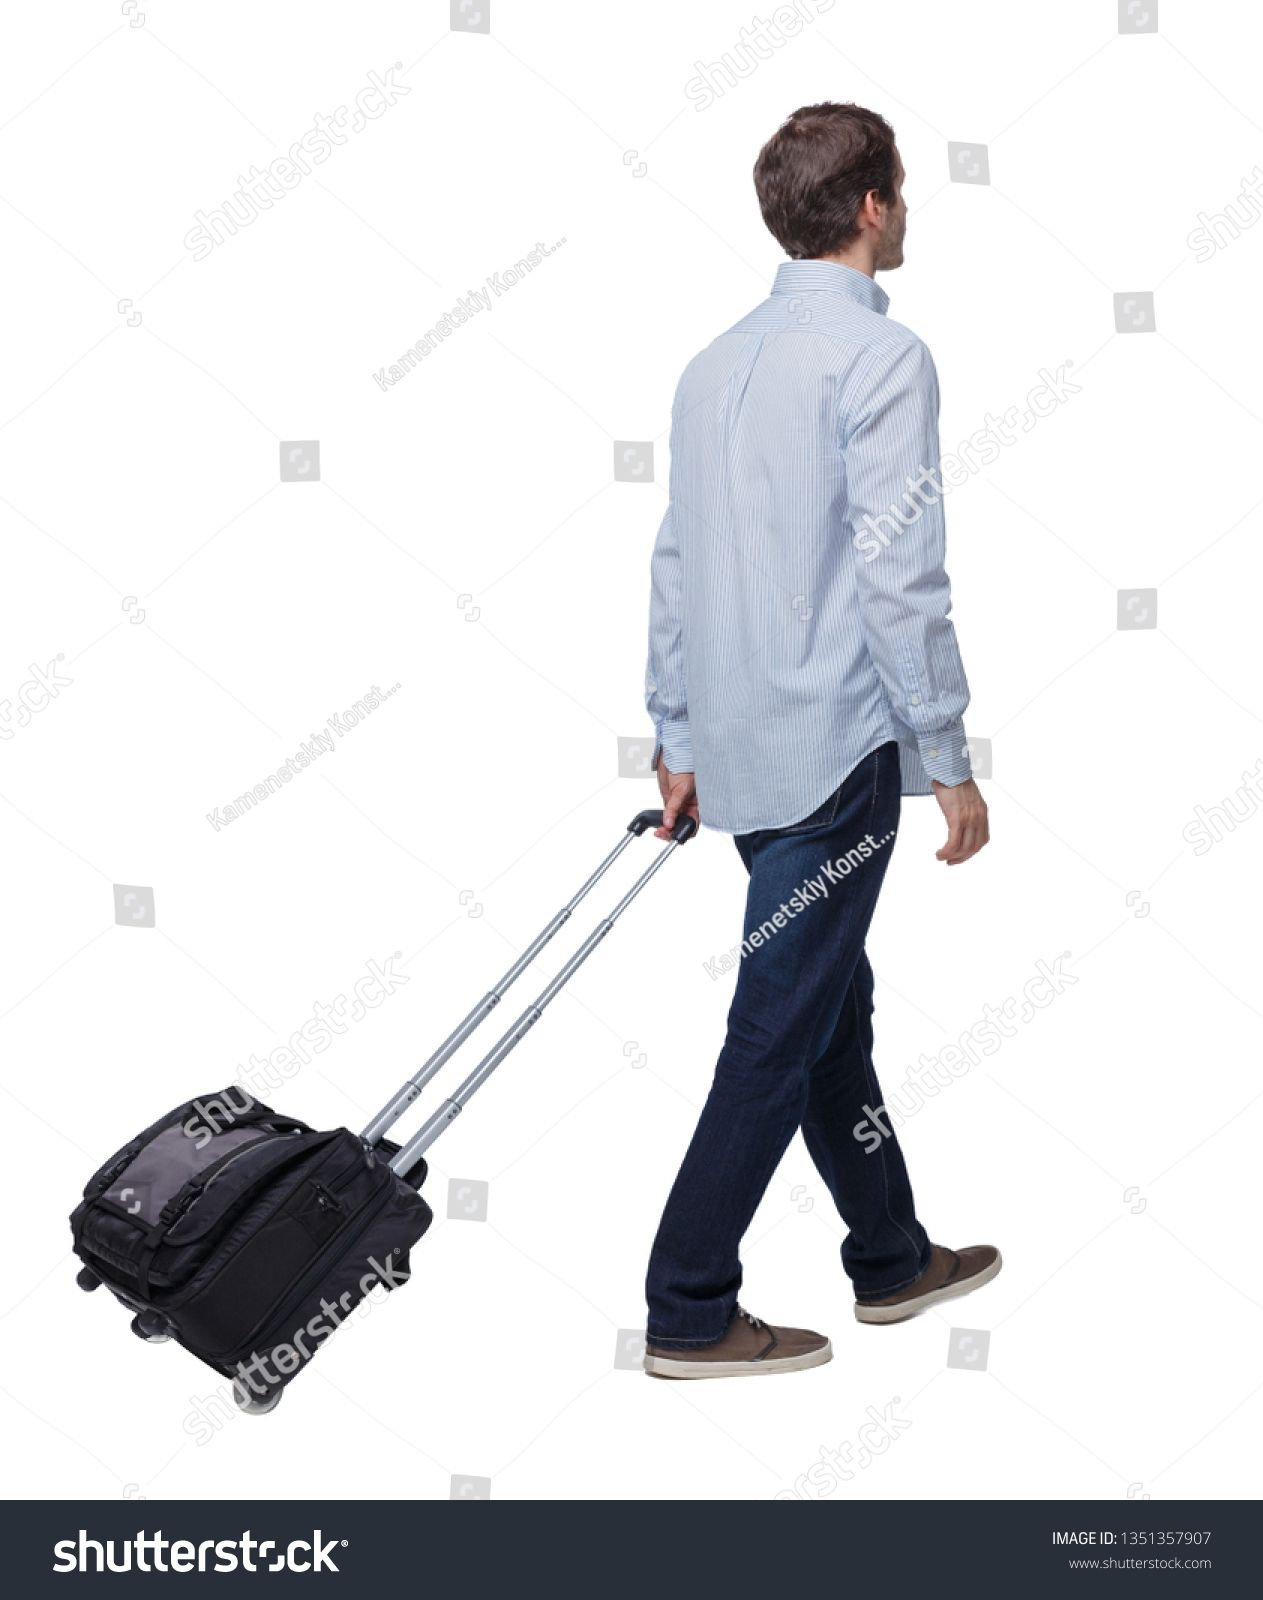 Back View Of Walking Business Man With Suitcase Brunette Guy In Motion Backside View Of Person Rear View People Coll Business Man Photo Editing Stock Photos